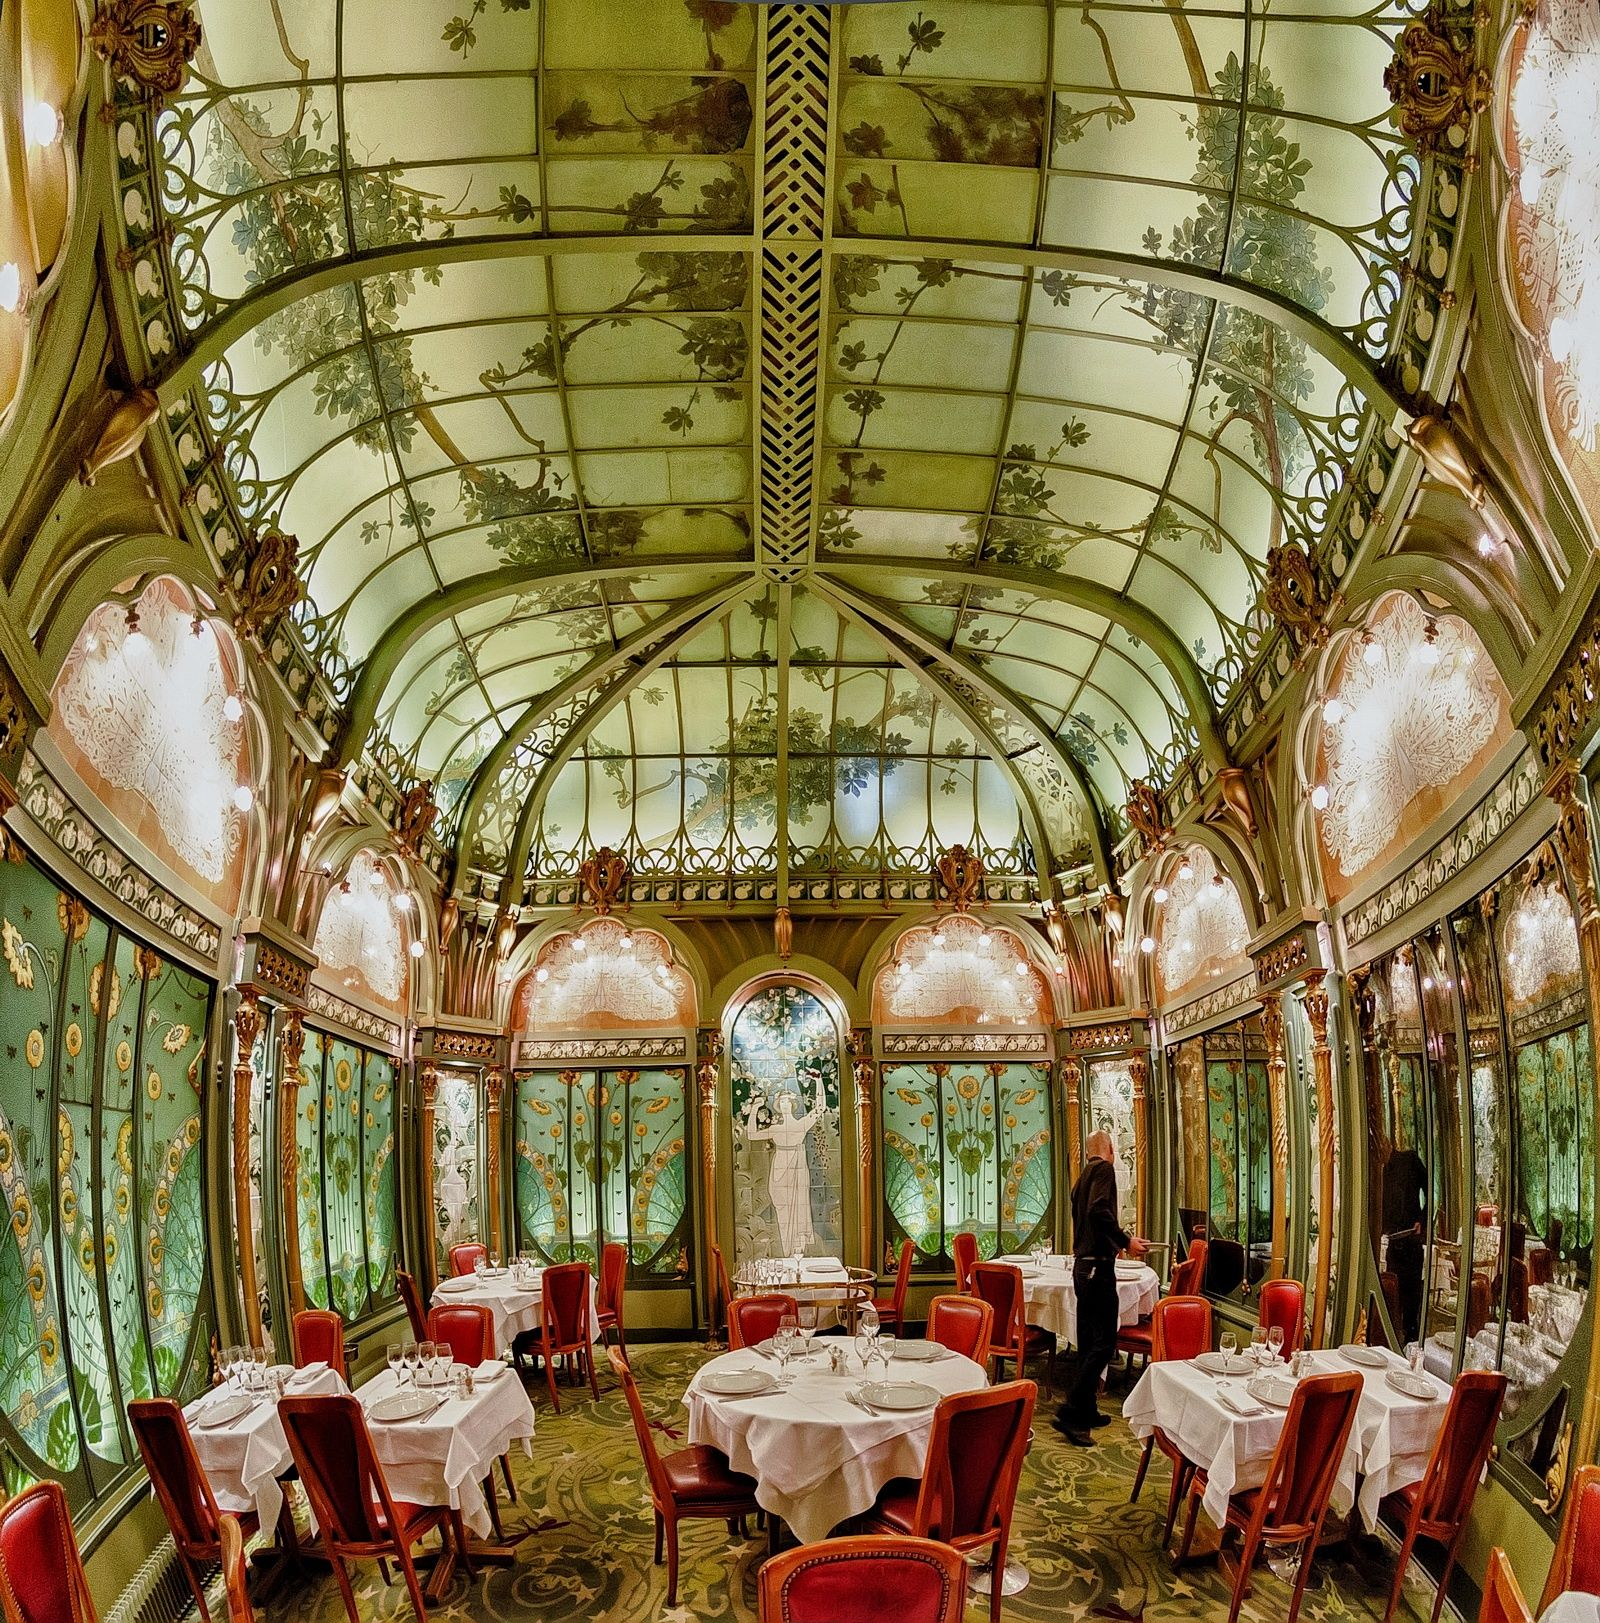 Restaurant La Fermette Marbeuf, Paris by Csaba Attila Kontár on 500px